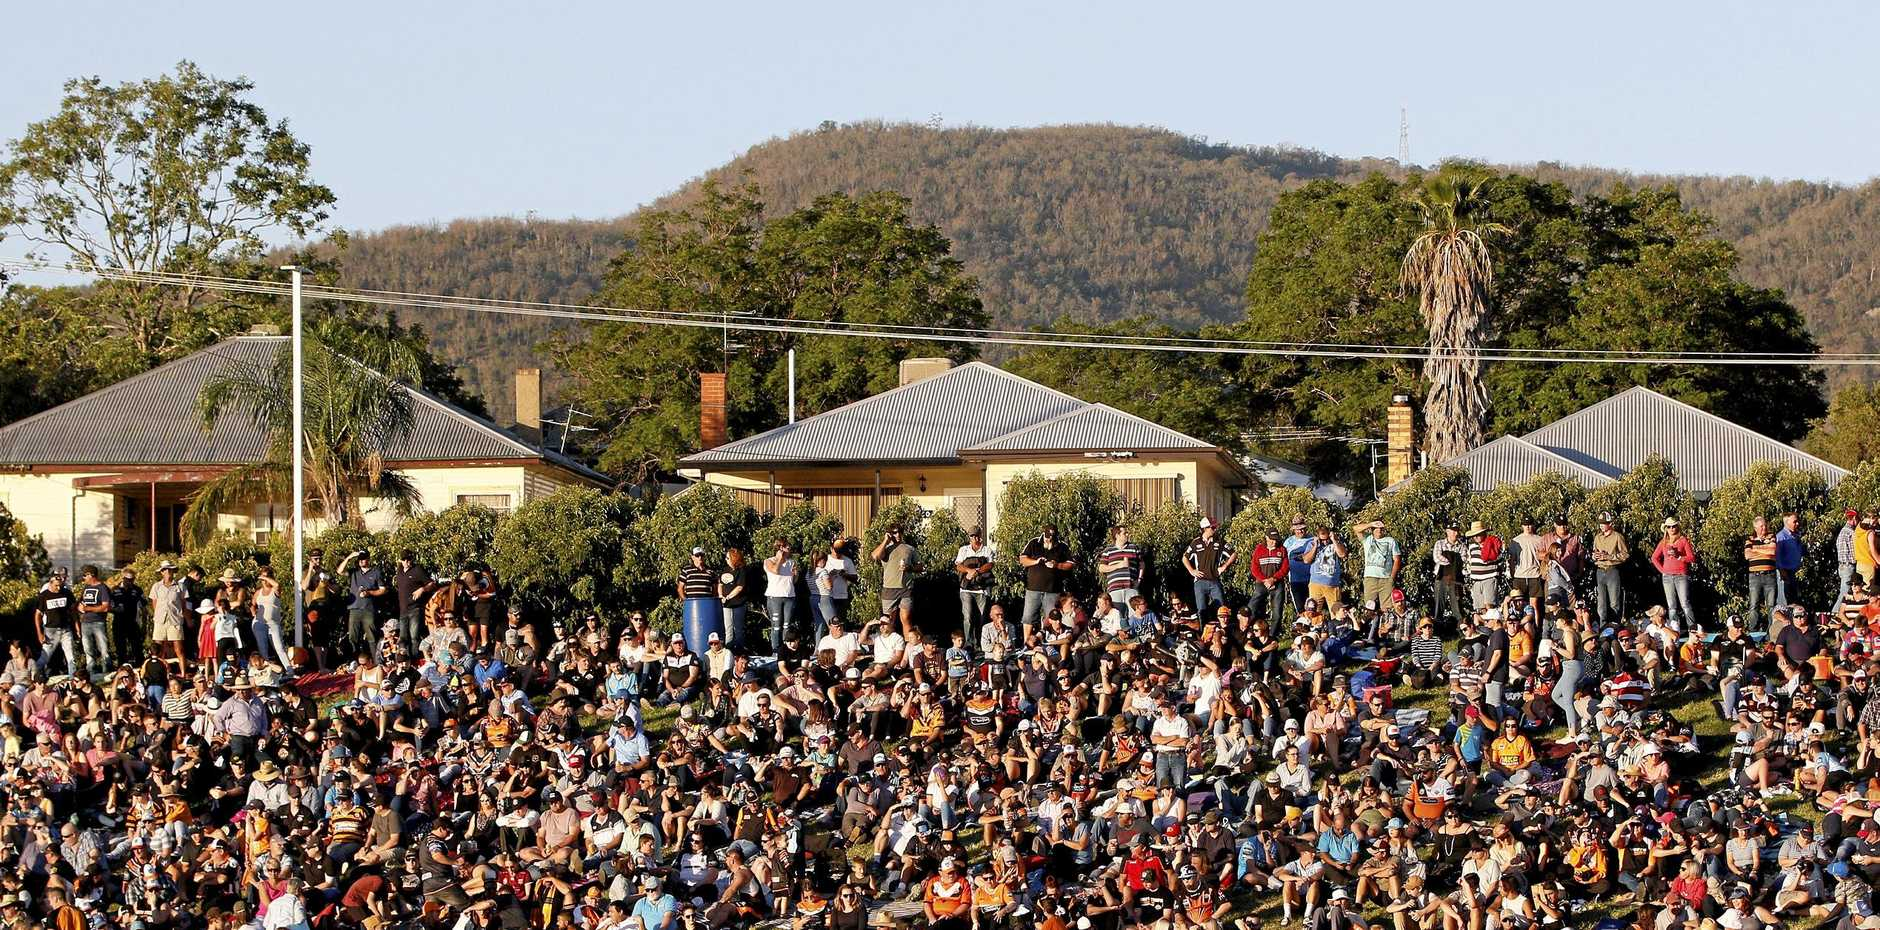 NRL fans crowd the Western hill before the Round 7 NRL match between the Wests Tigers and the Gold Coast Titans at Scully Park in Tamworth, Saturday, April 27, 2019. (AAP Image/Darren Pateman) NO ARCHIVING, EDITORIAL USE ONLY